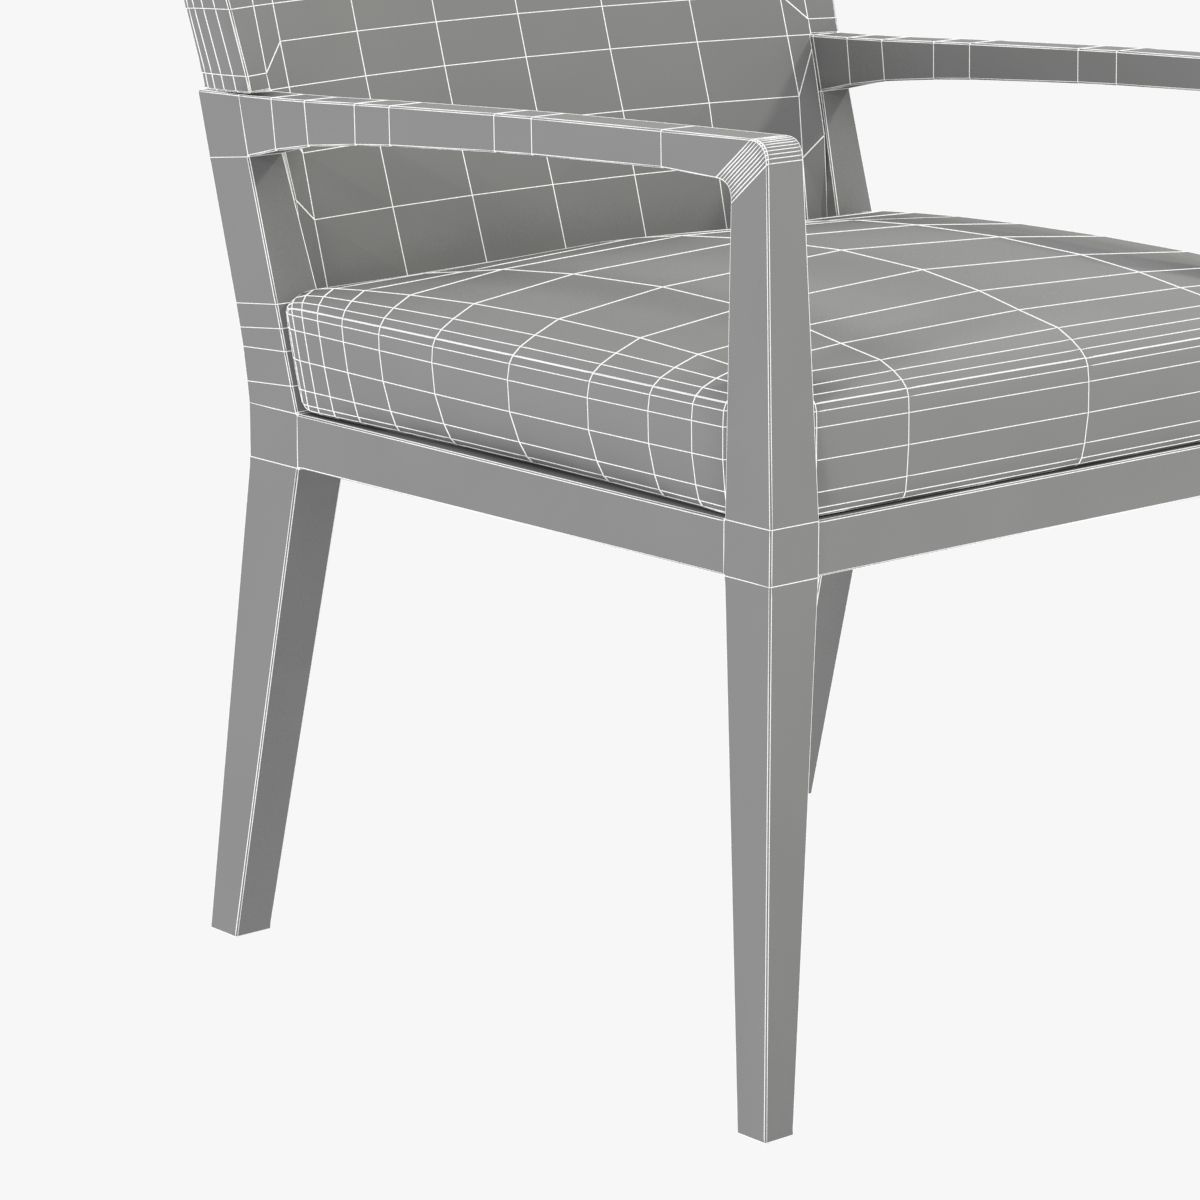 Holly Hunt LUNA DINING ARM CHAIR 3D Model MAX OBJ 3DS FBX  : holly hunt luna dining arm chair 3d model from www.cgtrader.com size 1200 x 1200 jpeg 80kB